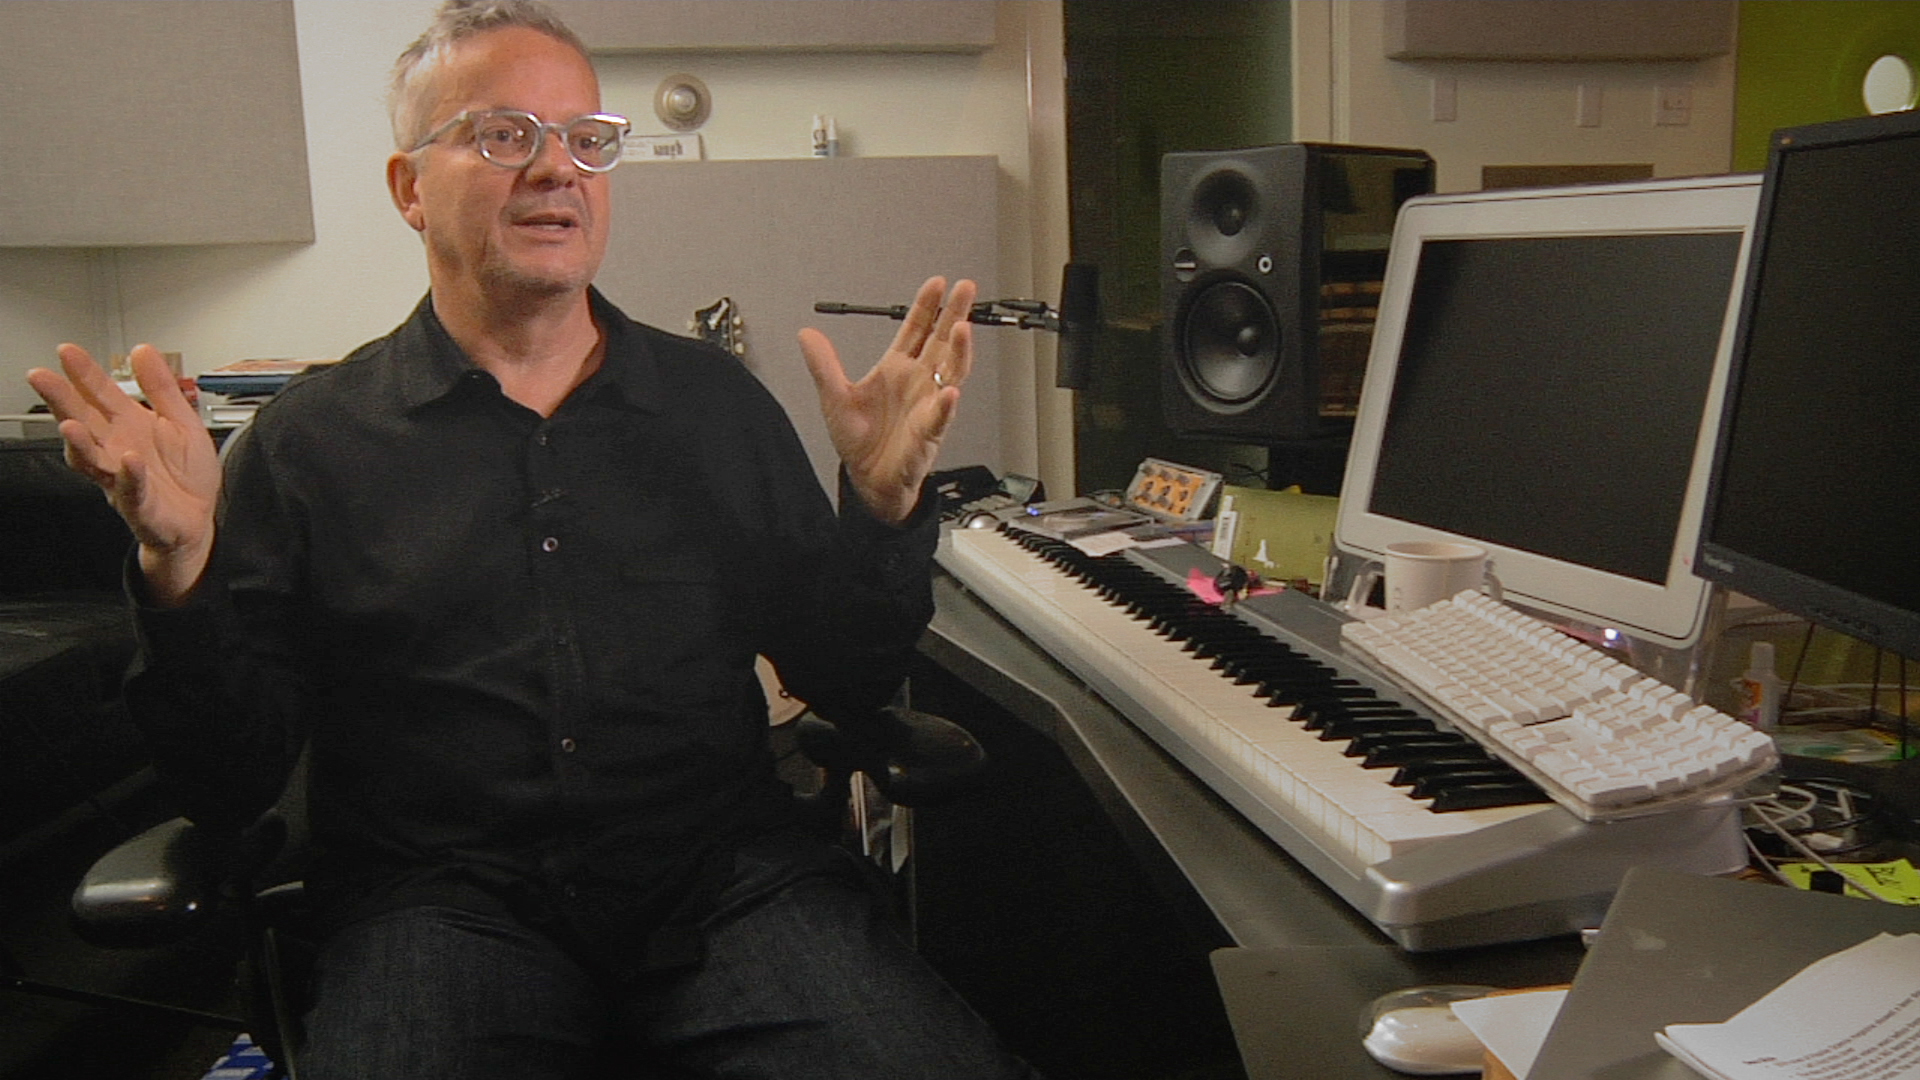 Introduction: Creative Inspirations: Mark Mothersbaugh, Music Composer